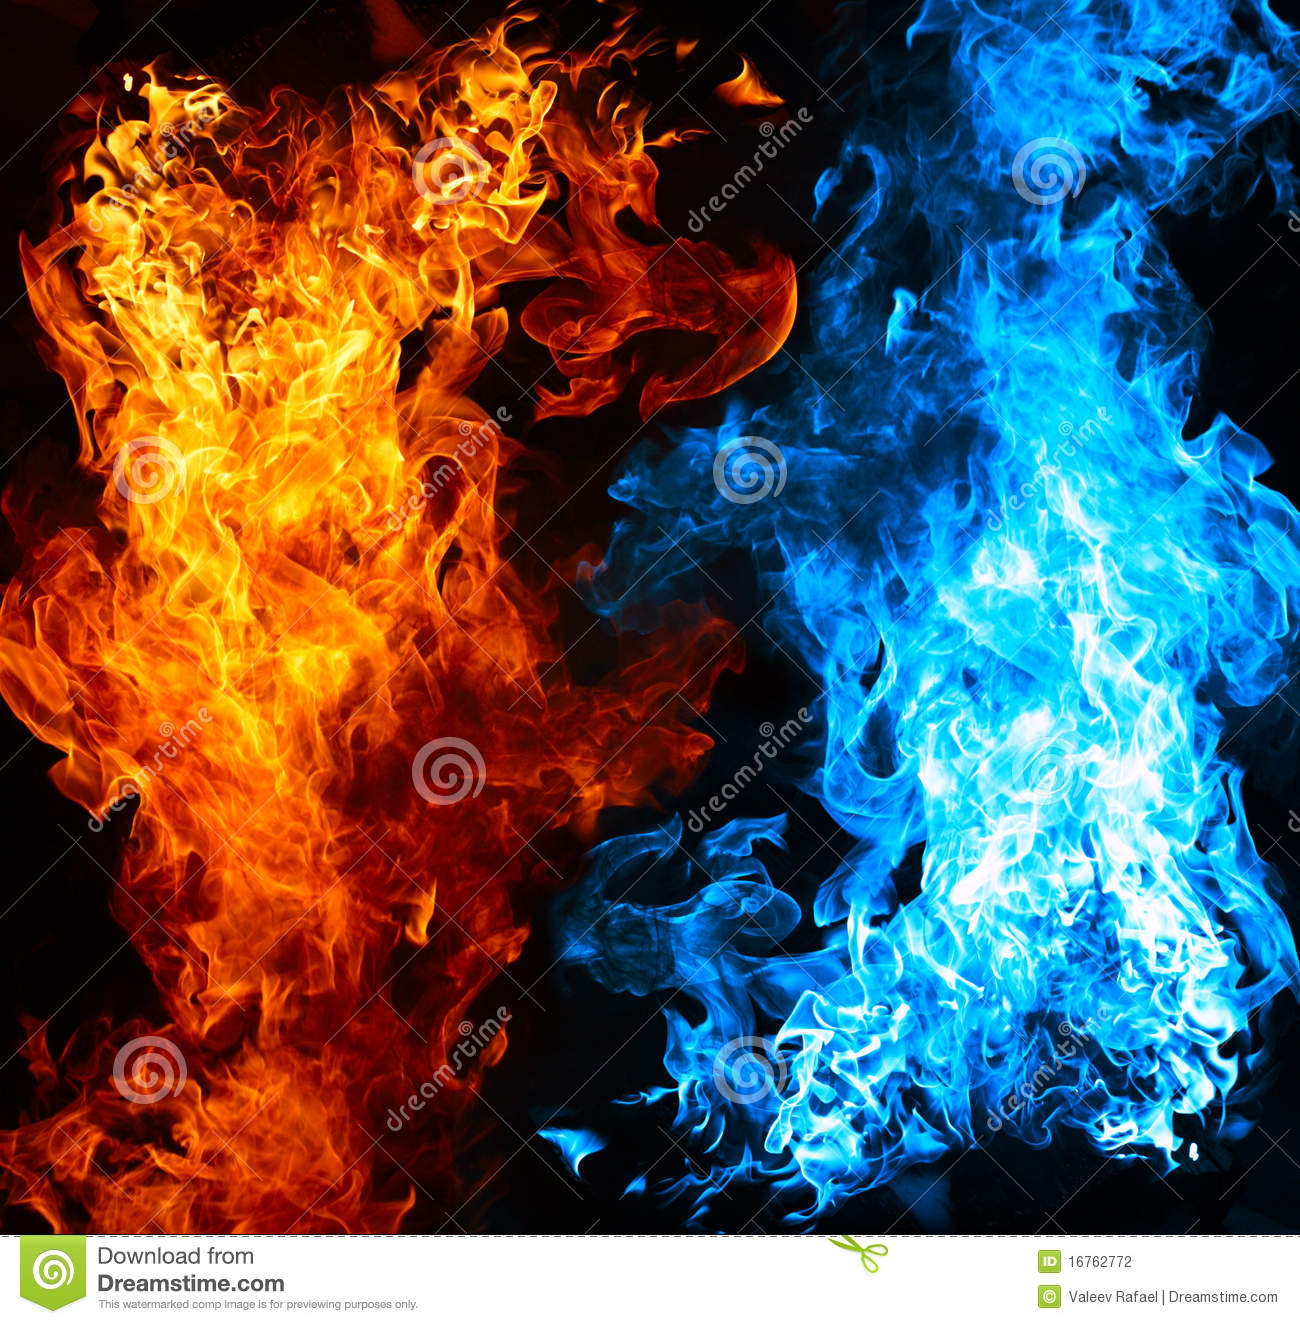 1300x1324 - Red and Blue Fire 10